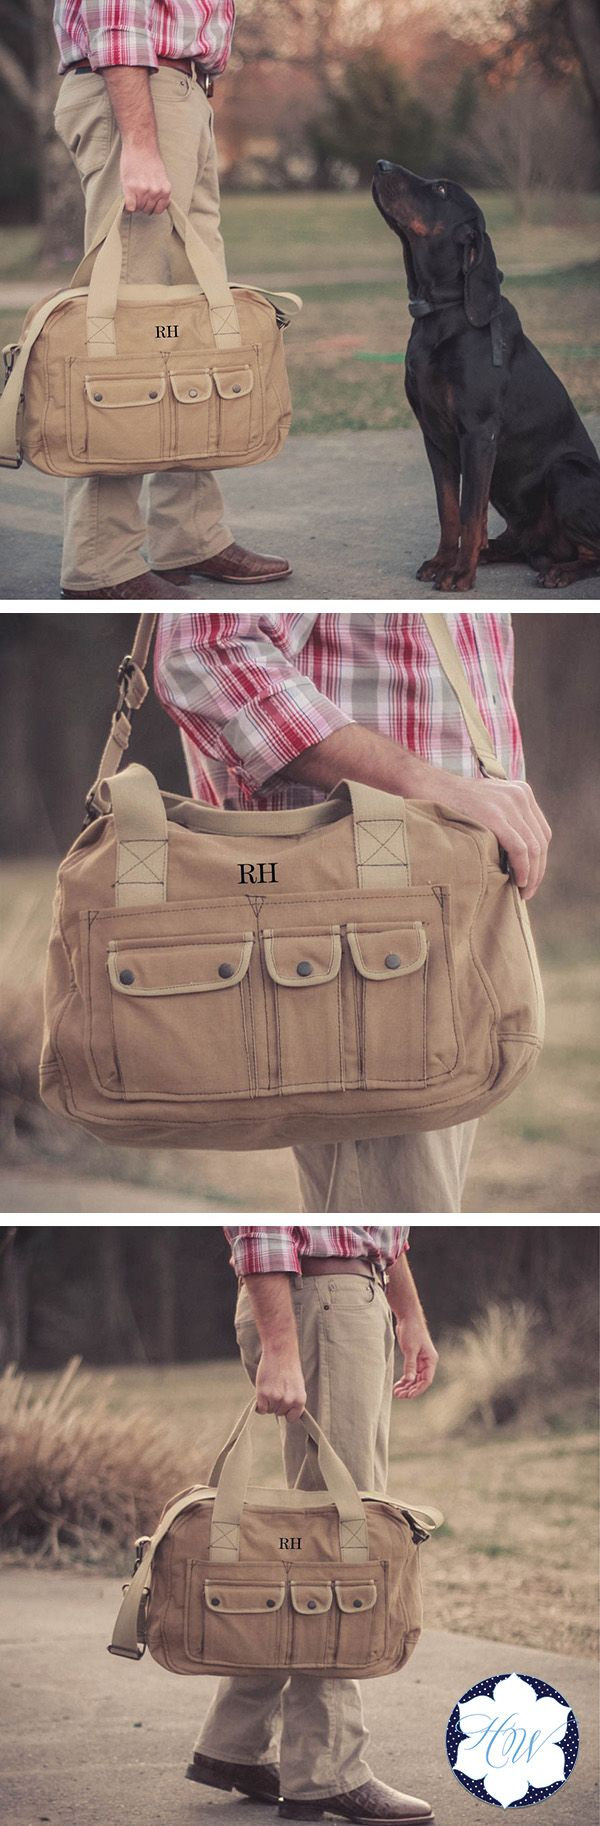 Give your groomsmen a gift they will actually use! This Personalized Vintage Overnight Bag is perfect for an overnight getaway…like a bachelor party maybe!?